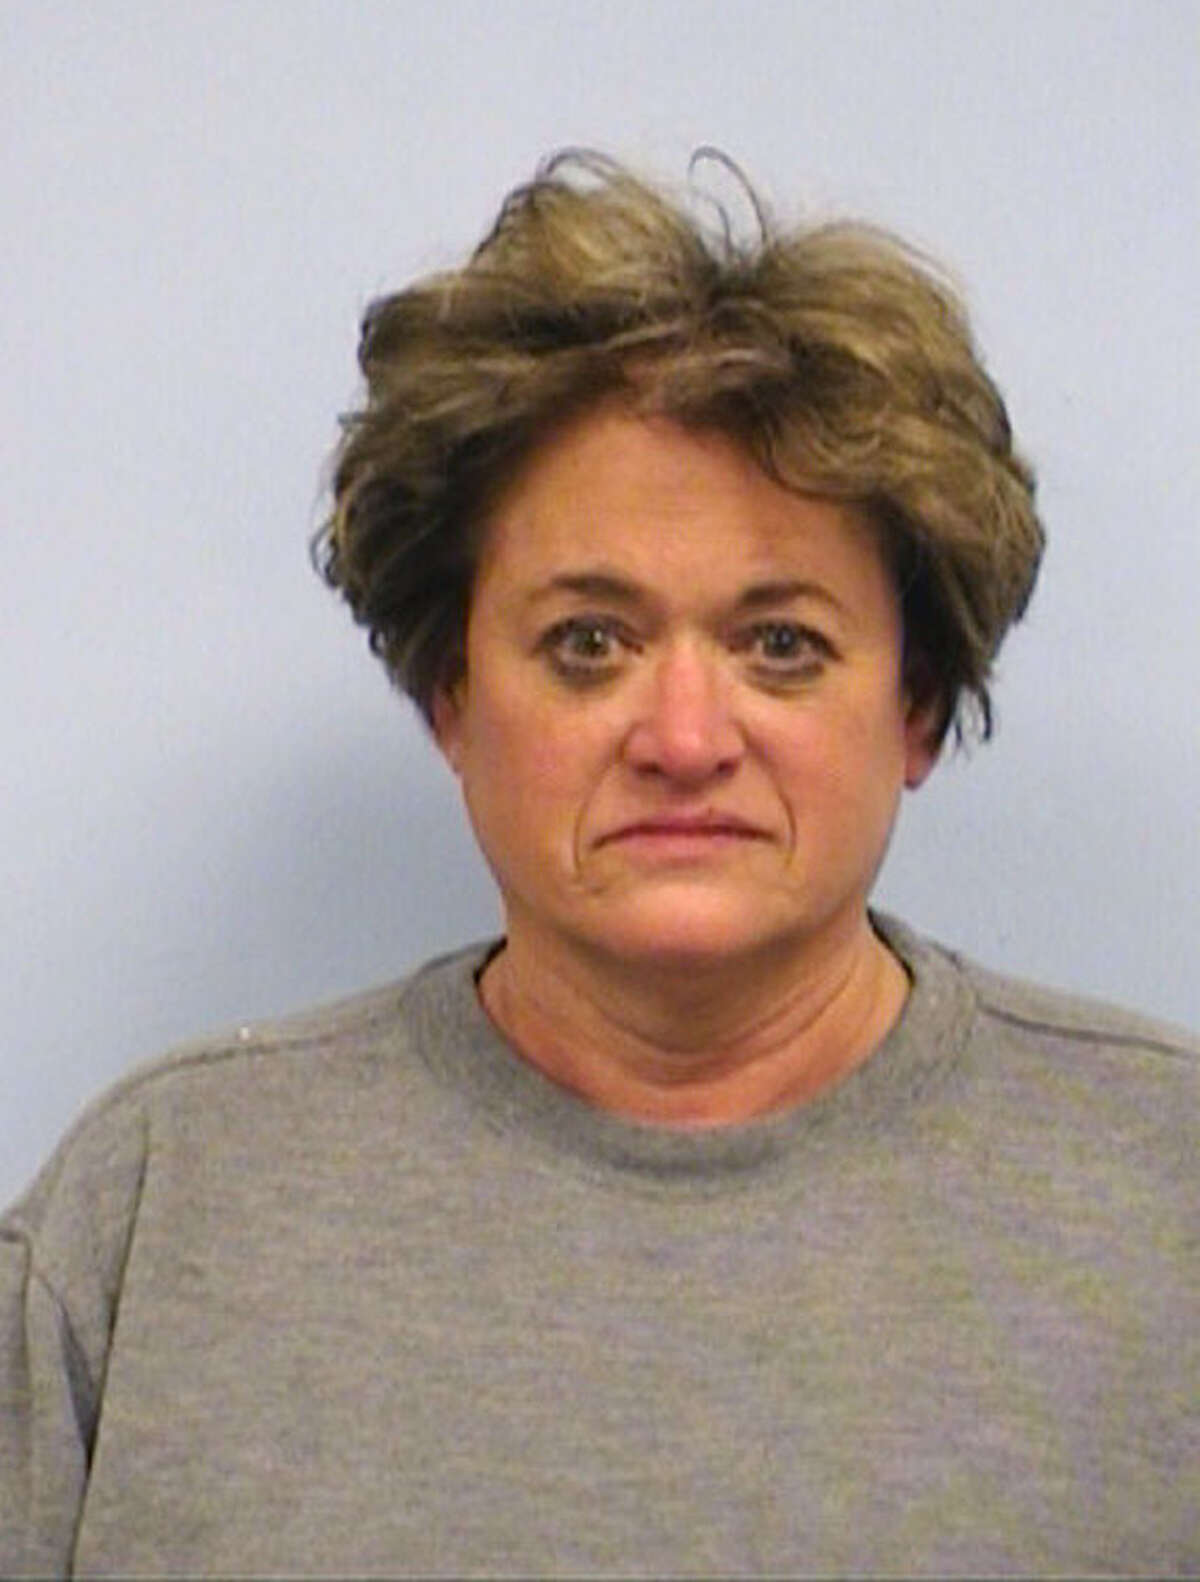 Rosemary Lehmberg had an open bottle of vodka on her front seat when she was stopped. She later pleaded guilty in the drunken-driving arrest and was sentenced to 45 days in the Travis County Jail. She was released after 22 days for good behavior.